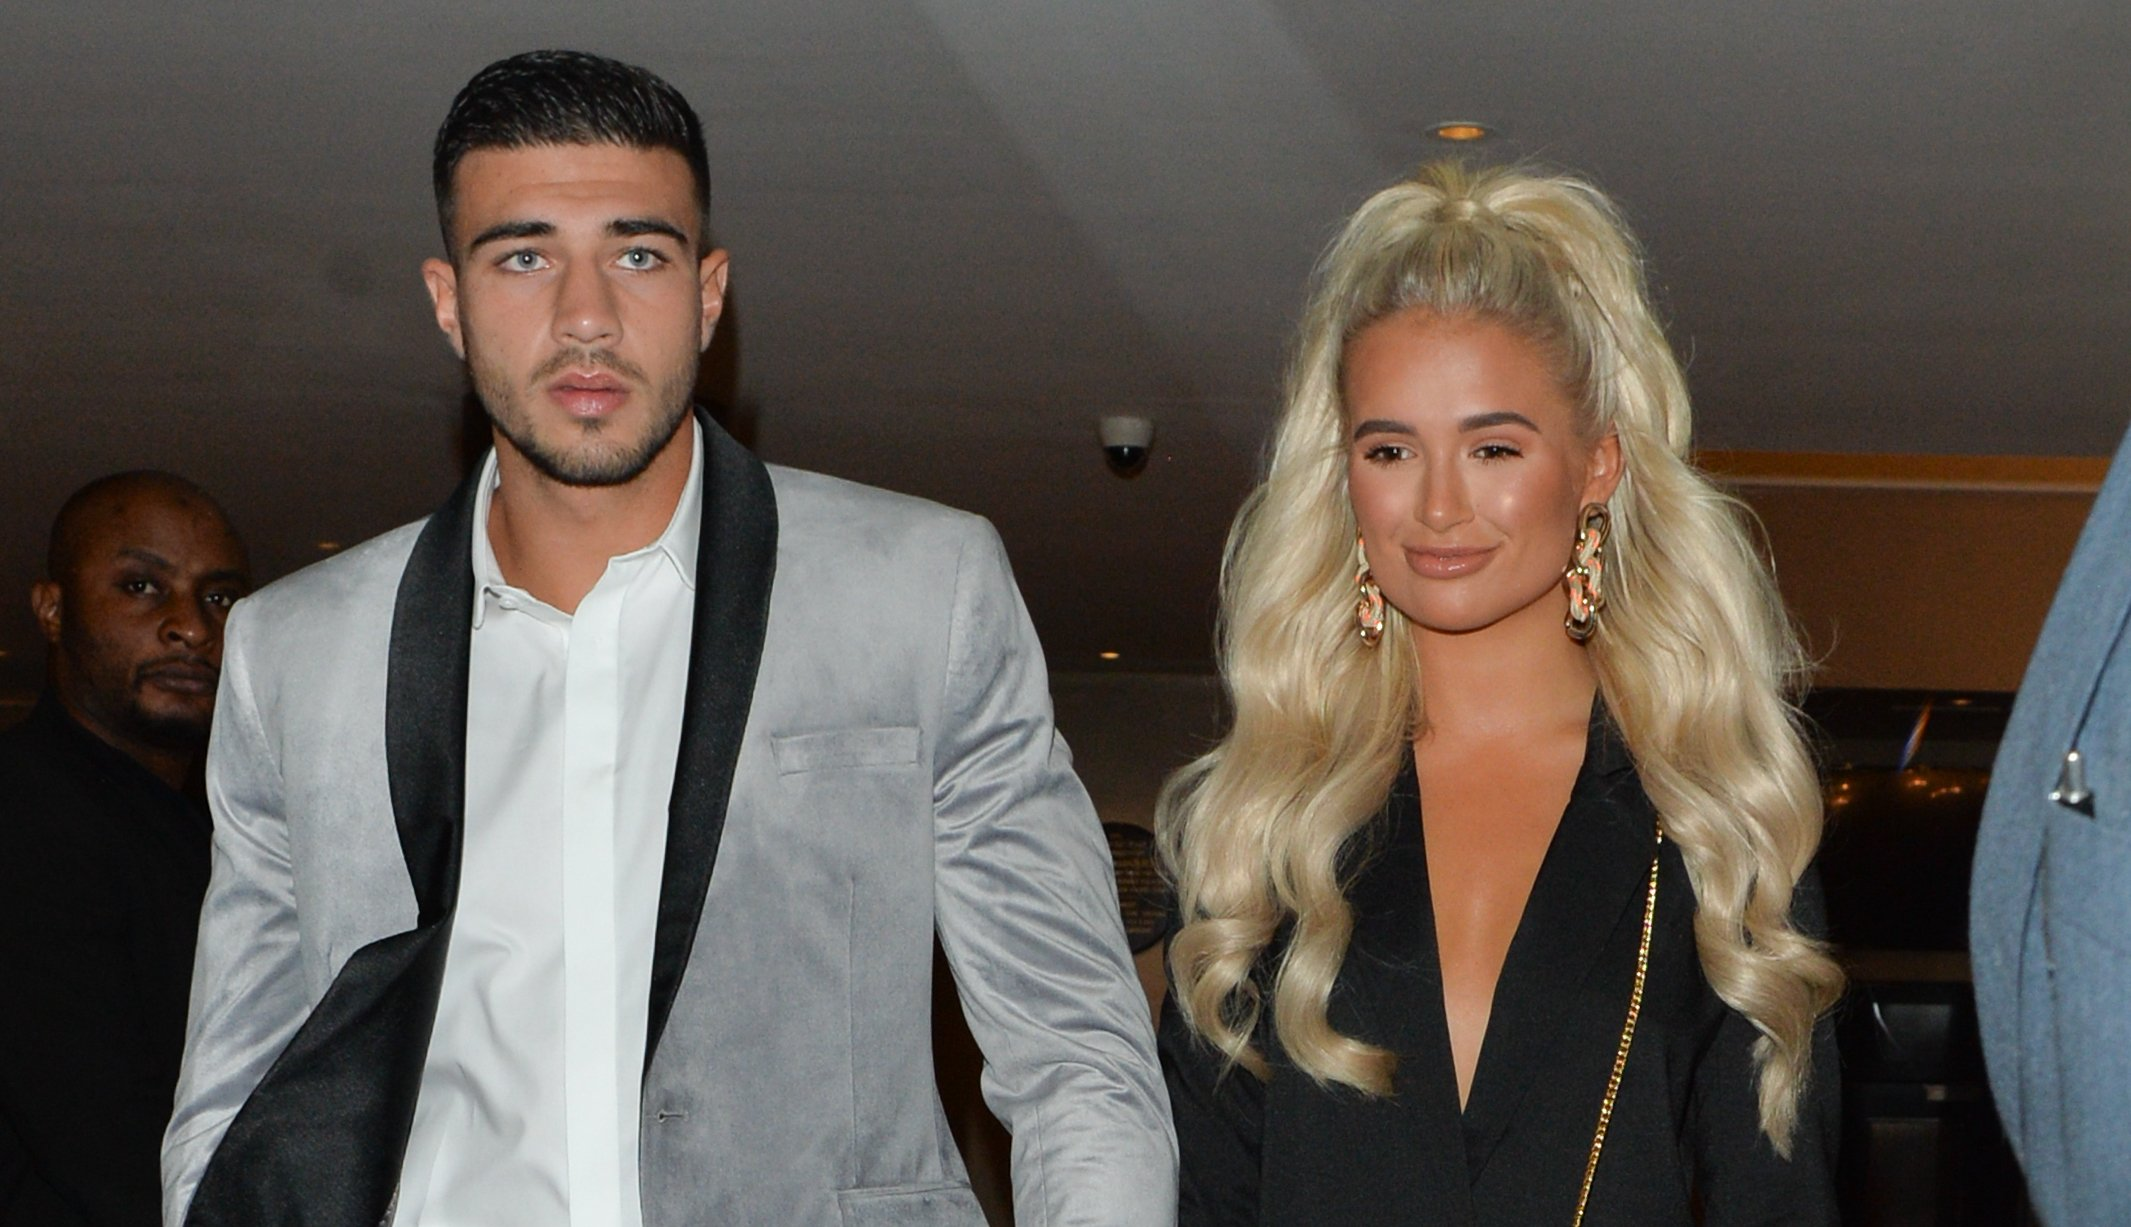 Molly-Mae Hague and Tommy Fury 'snubbed' from Love Island 'reunion' party